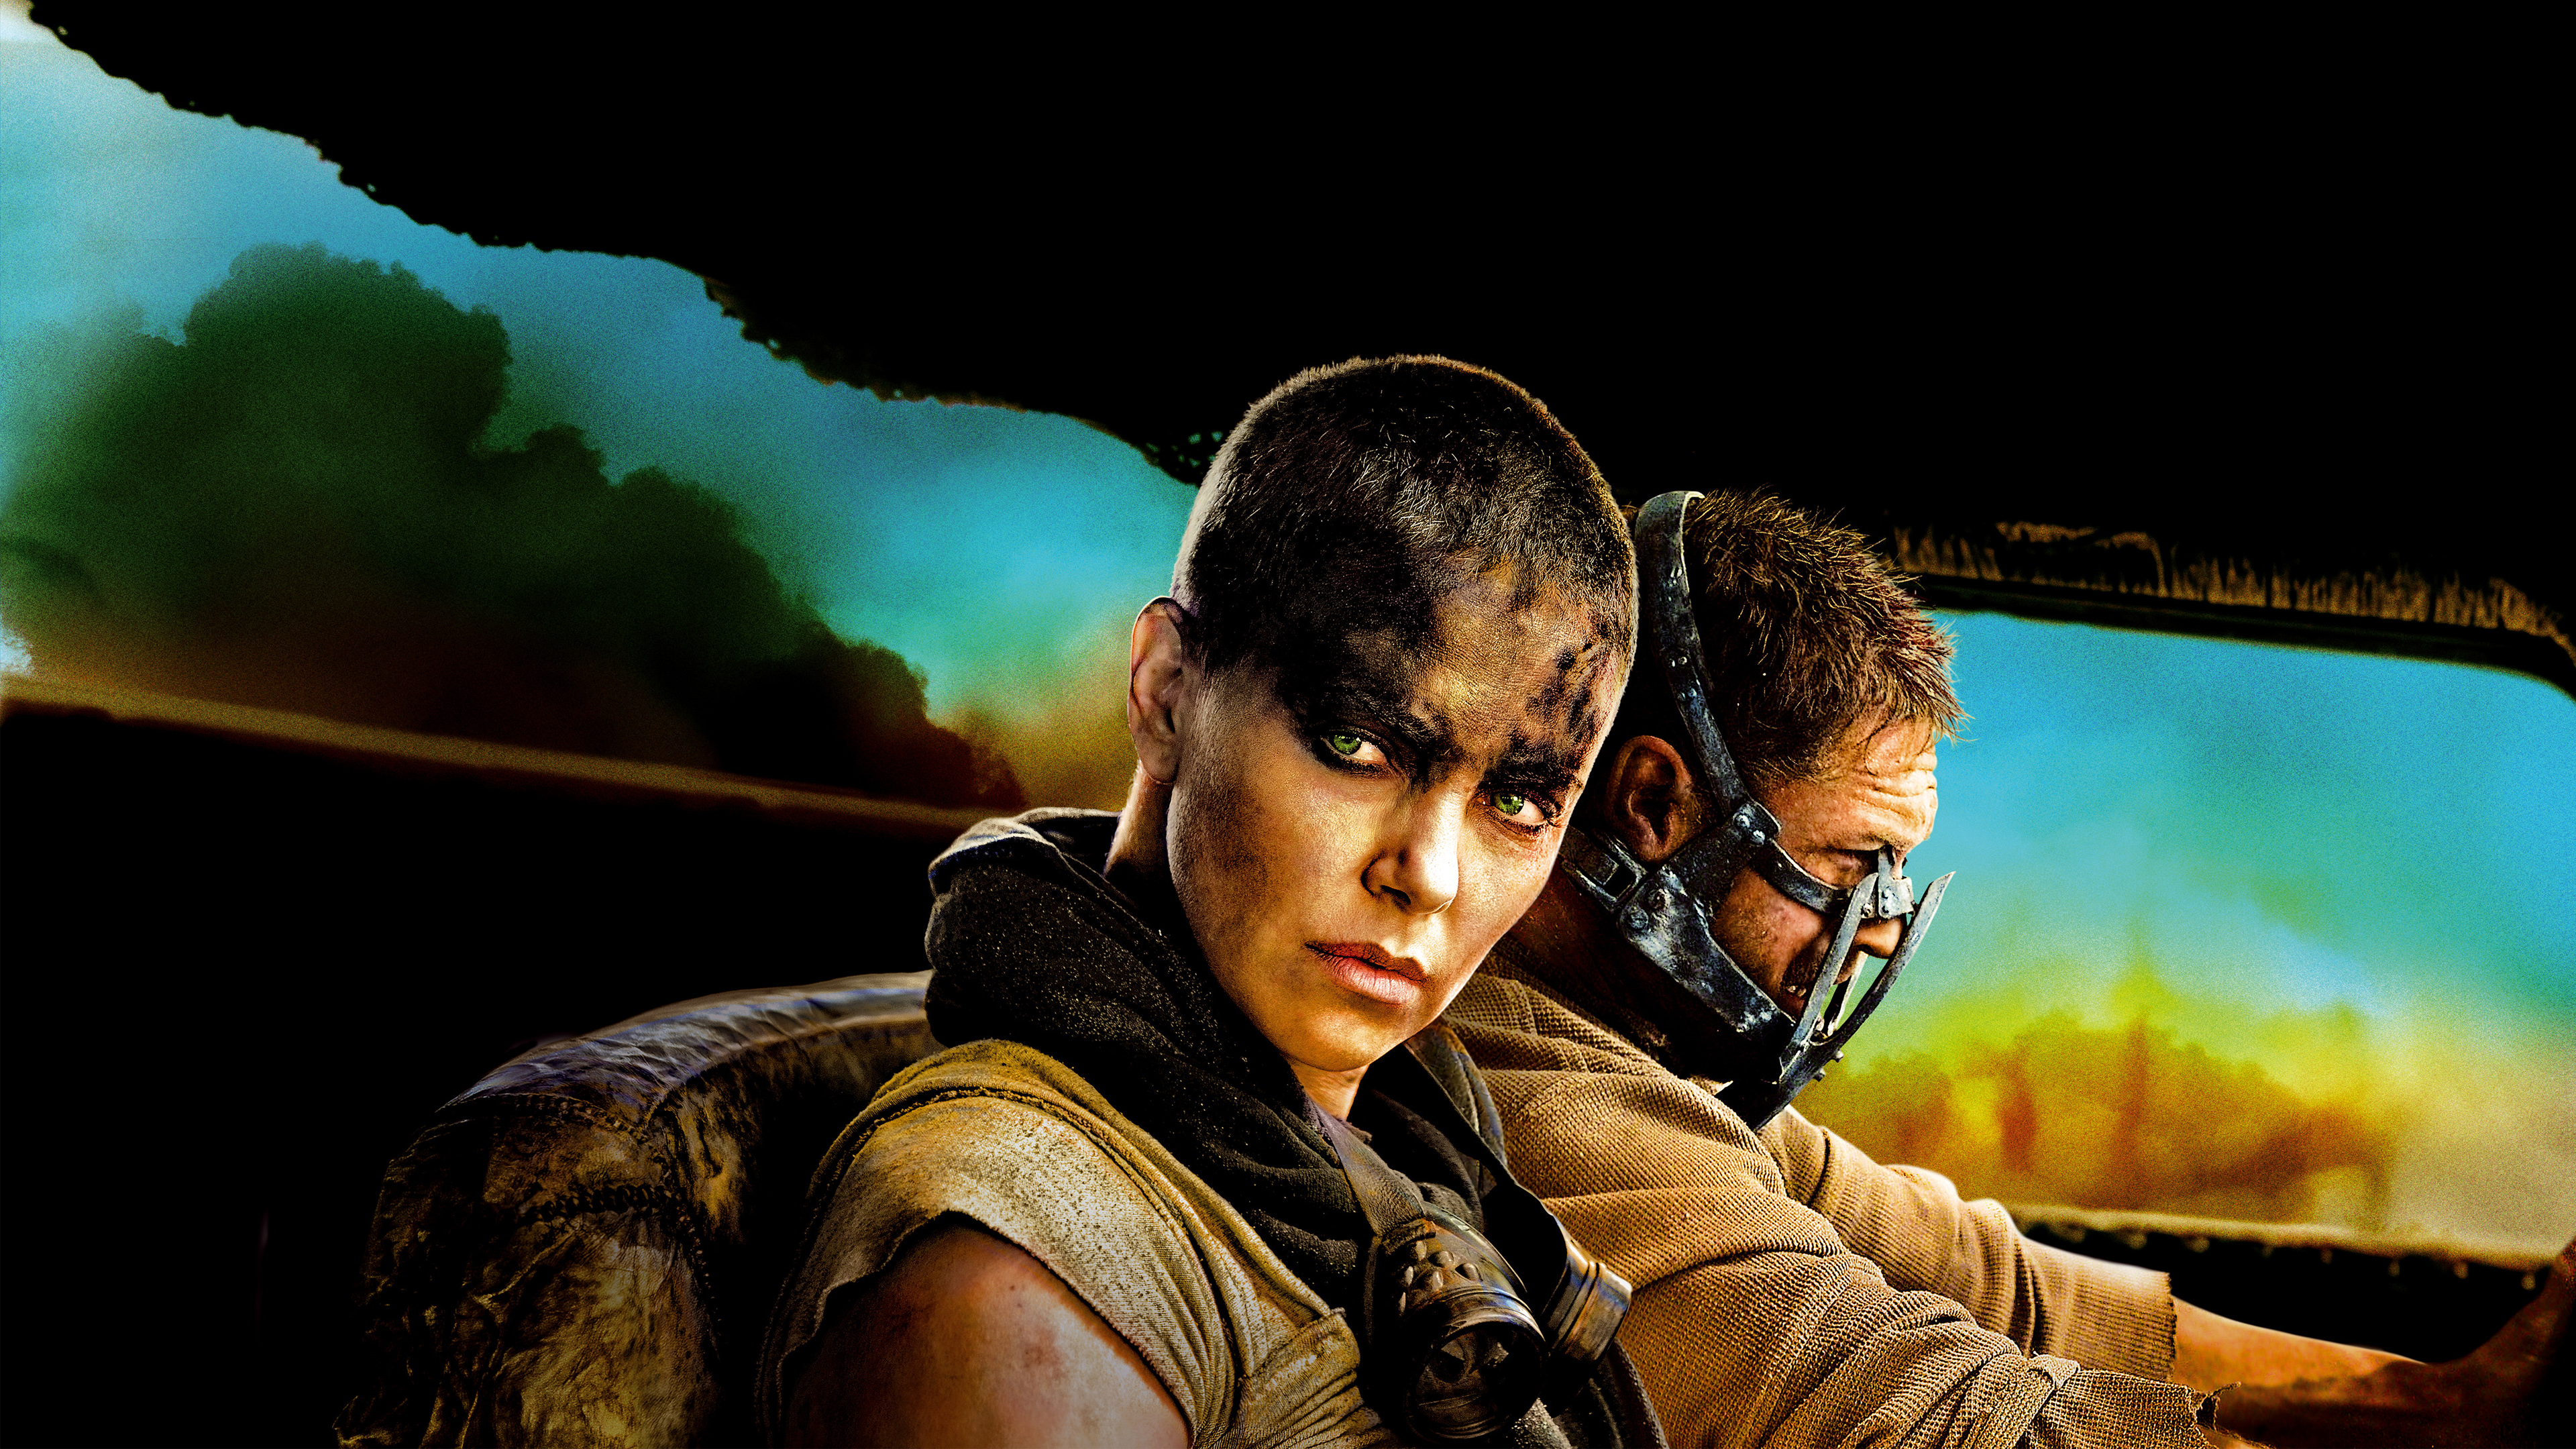 16 Hd Mad Max Fury Road Movie Wallpapers-5193